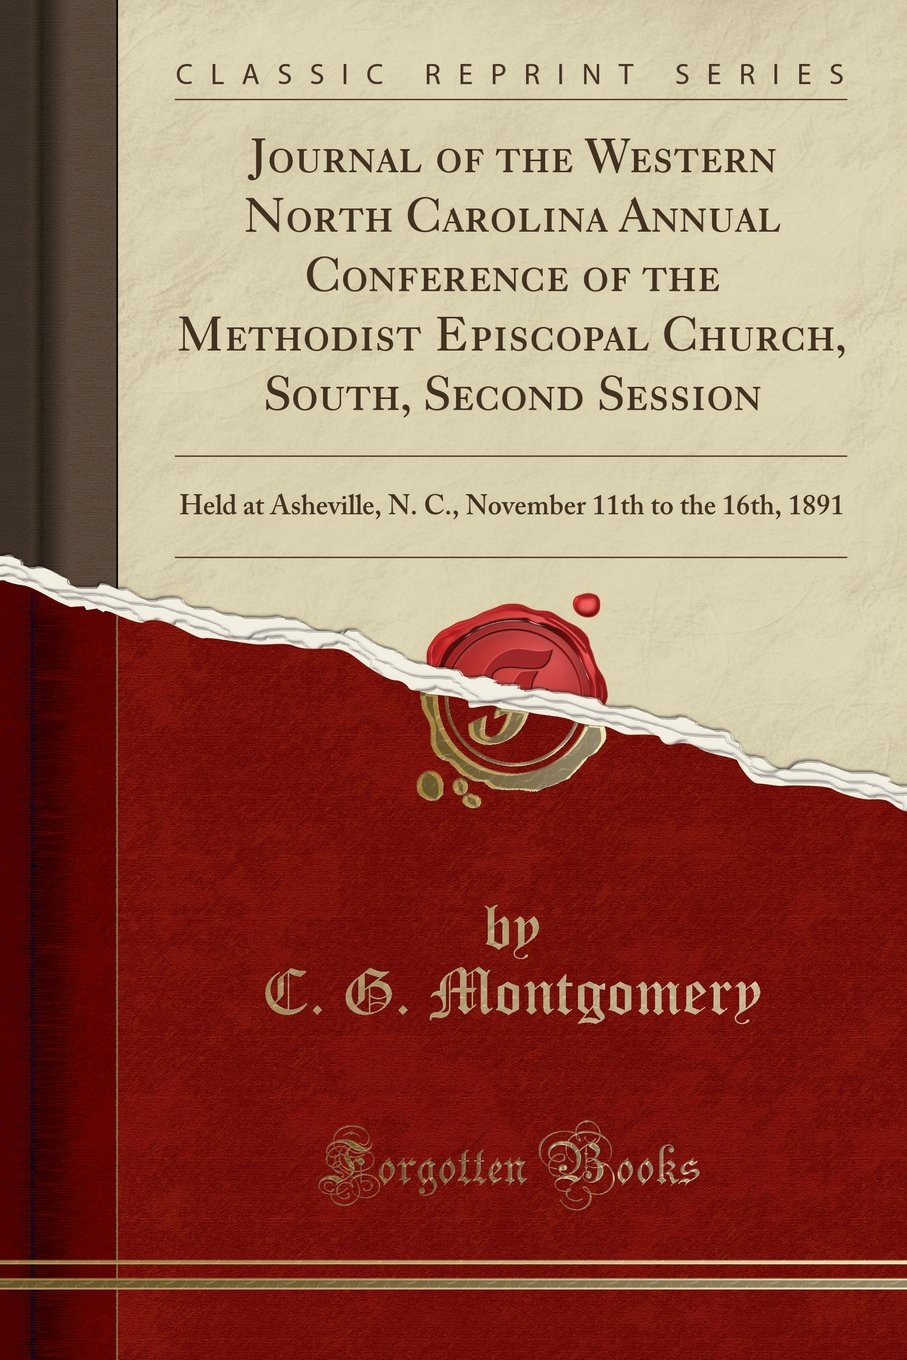 Read Online Journal of the Western North Carolina Annual Conference of the Methodist Episcopal Church, South, Second Session: Held at Asheville, N. C., November 11th to the 16th, 1891 (Classic Reprint) PDF